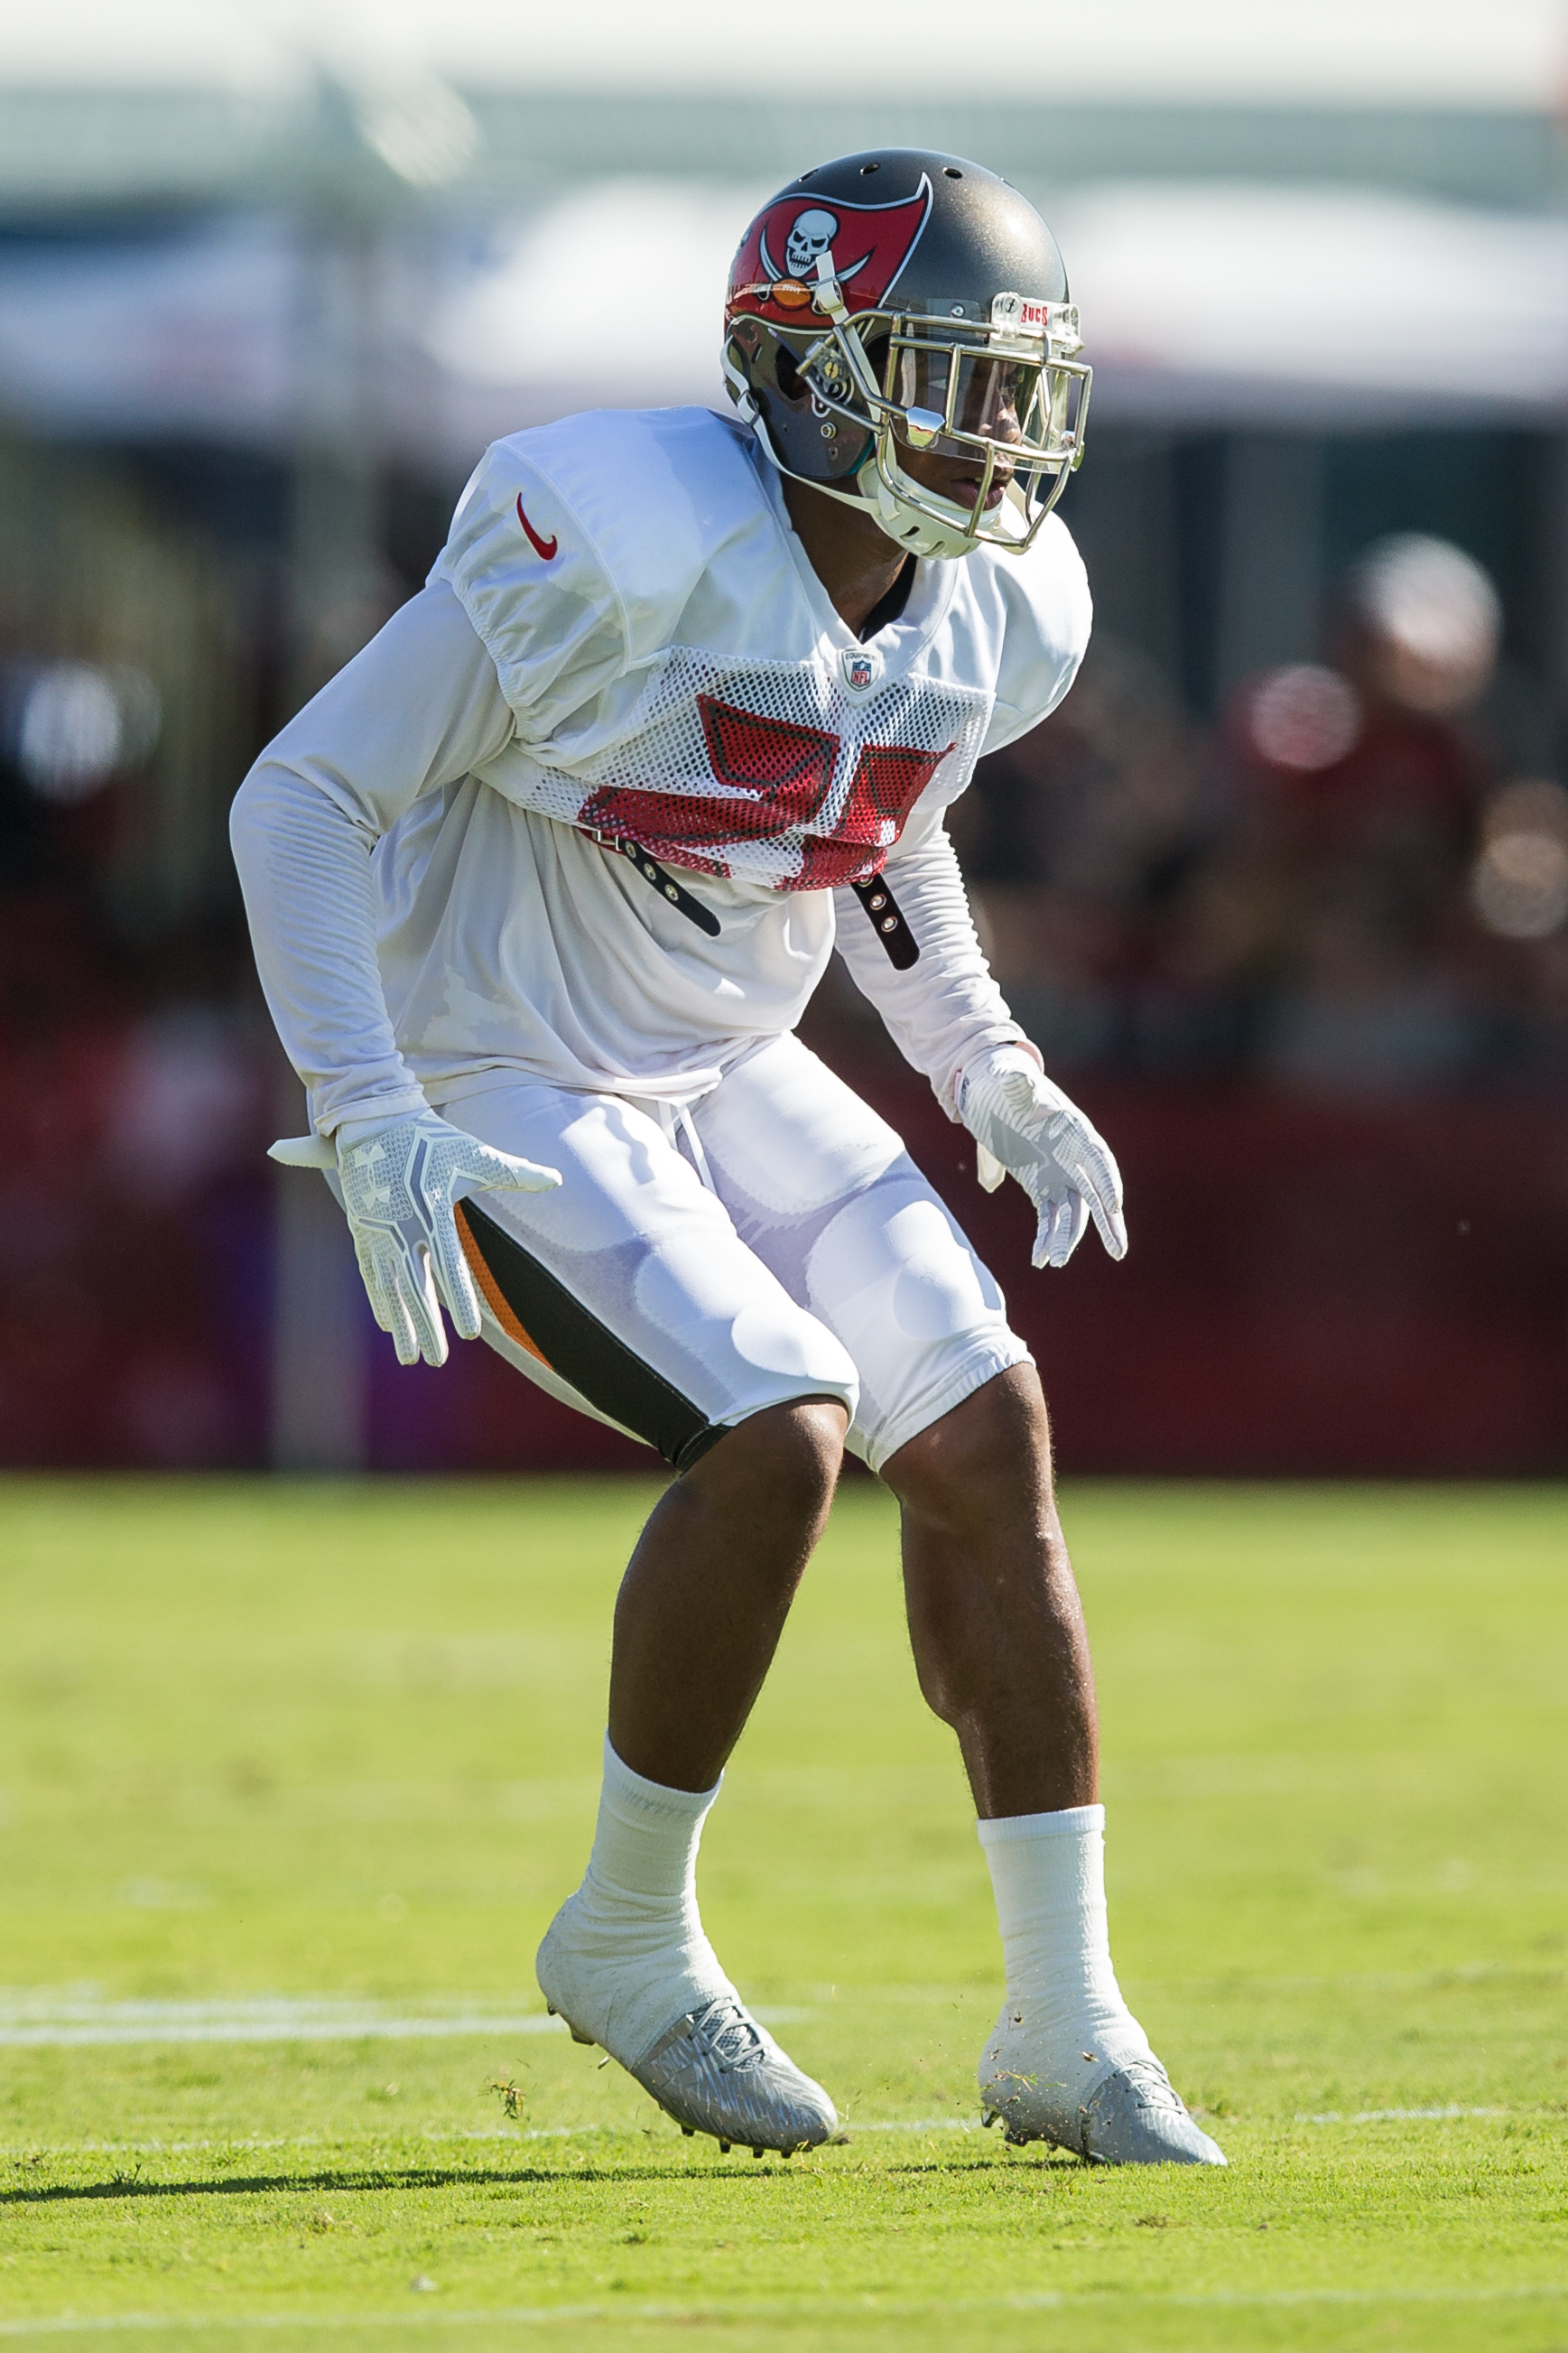 Can the Bucs' Hargreaves slow down Atlanta's Julio Jones./TRAVIS PENDERGRASS